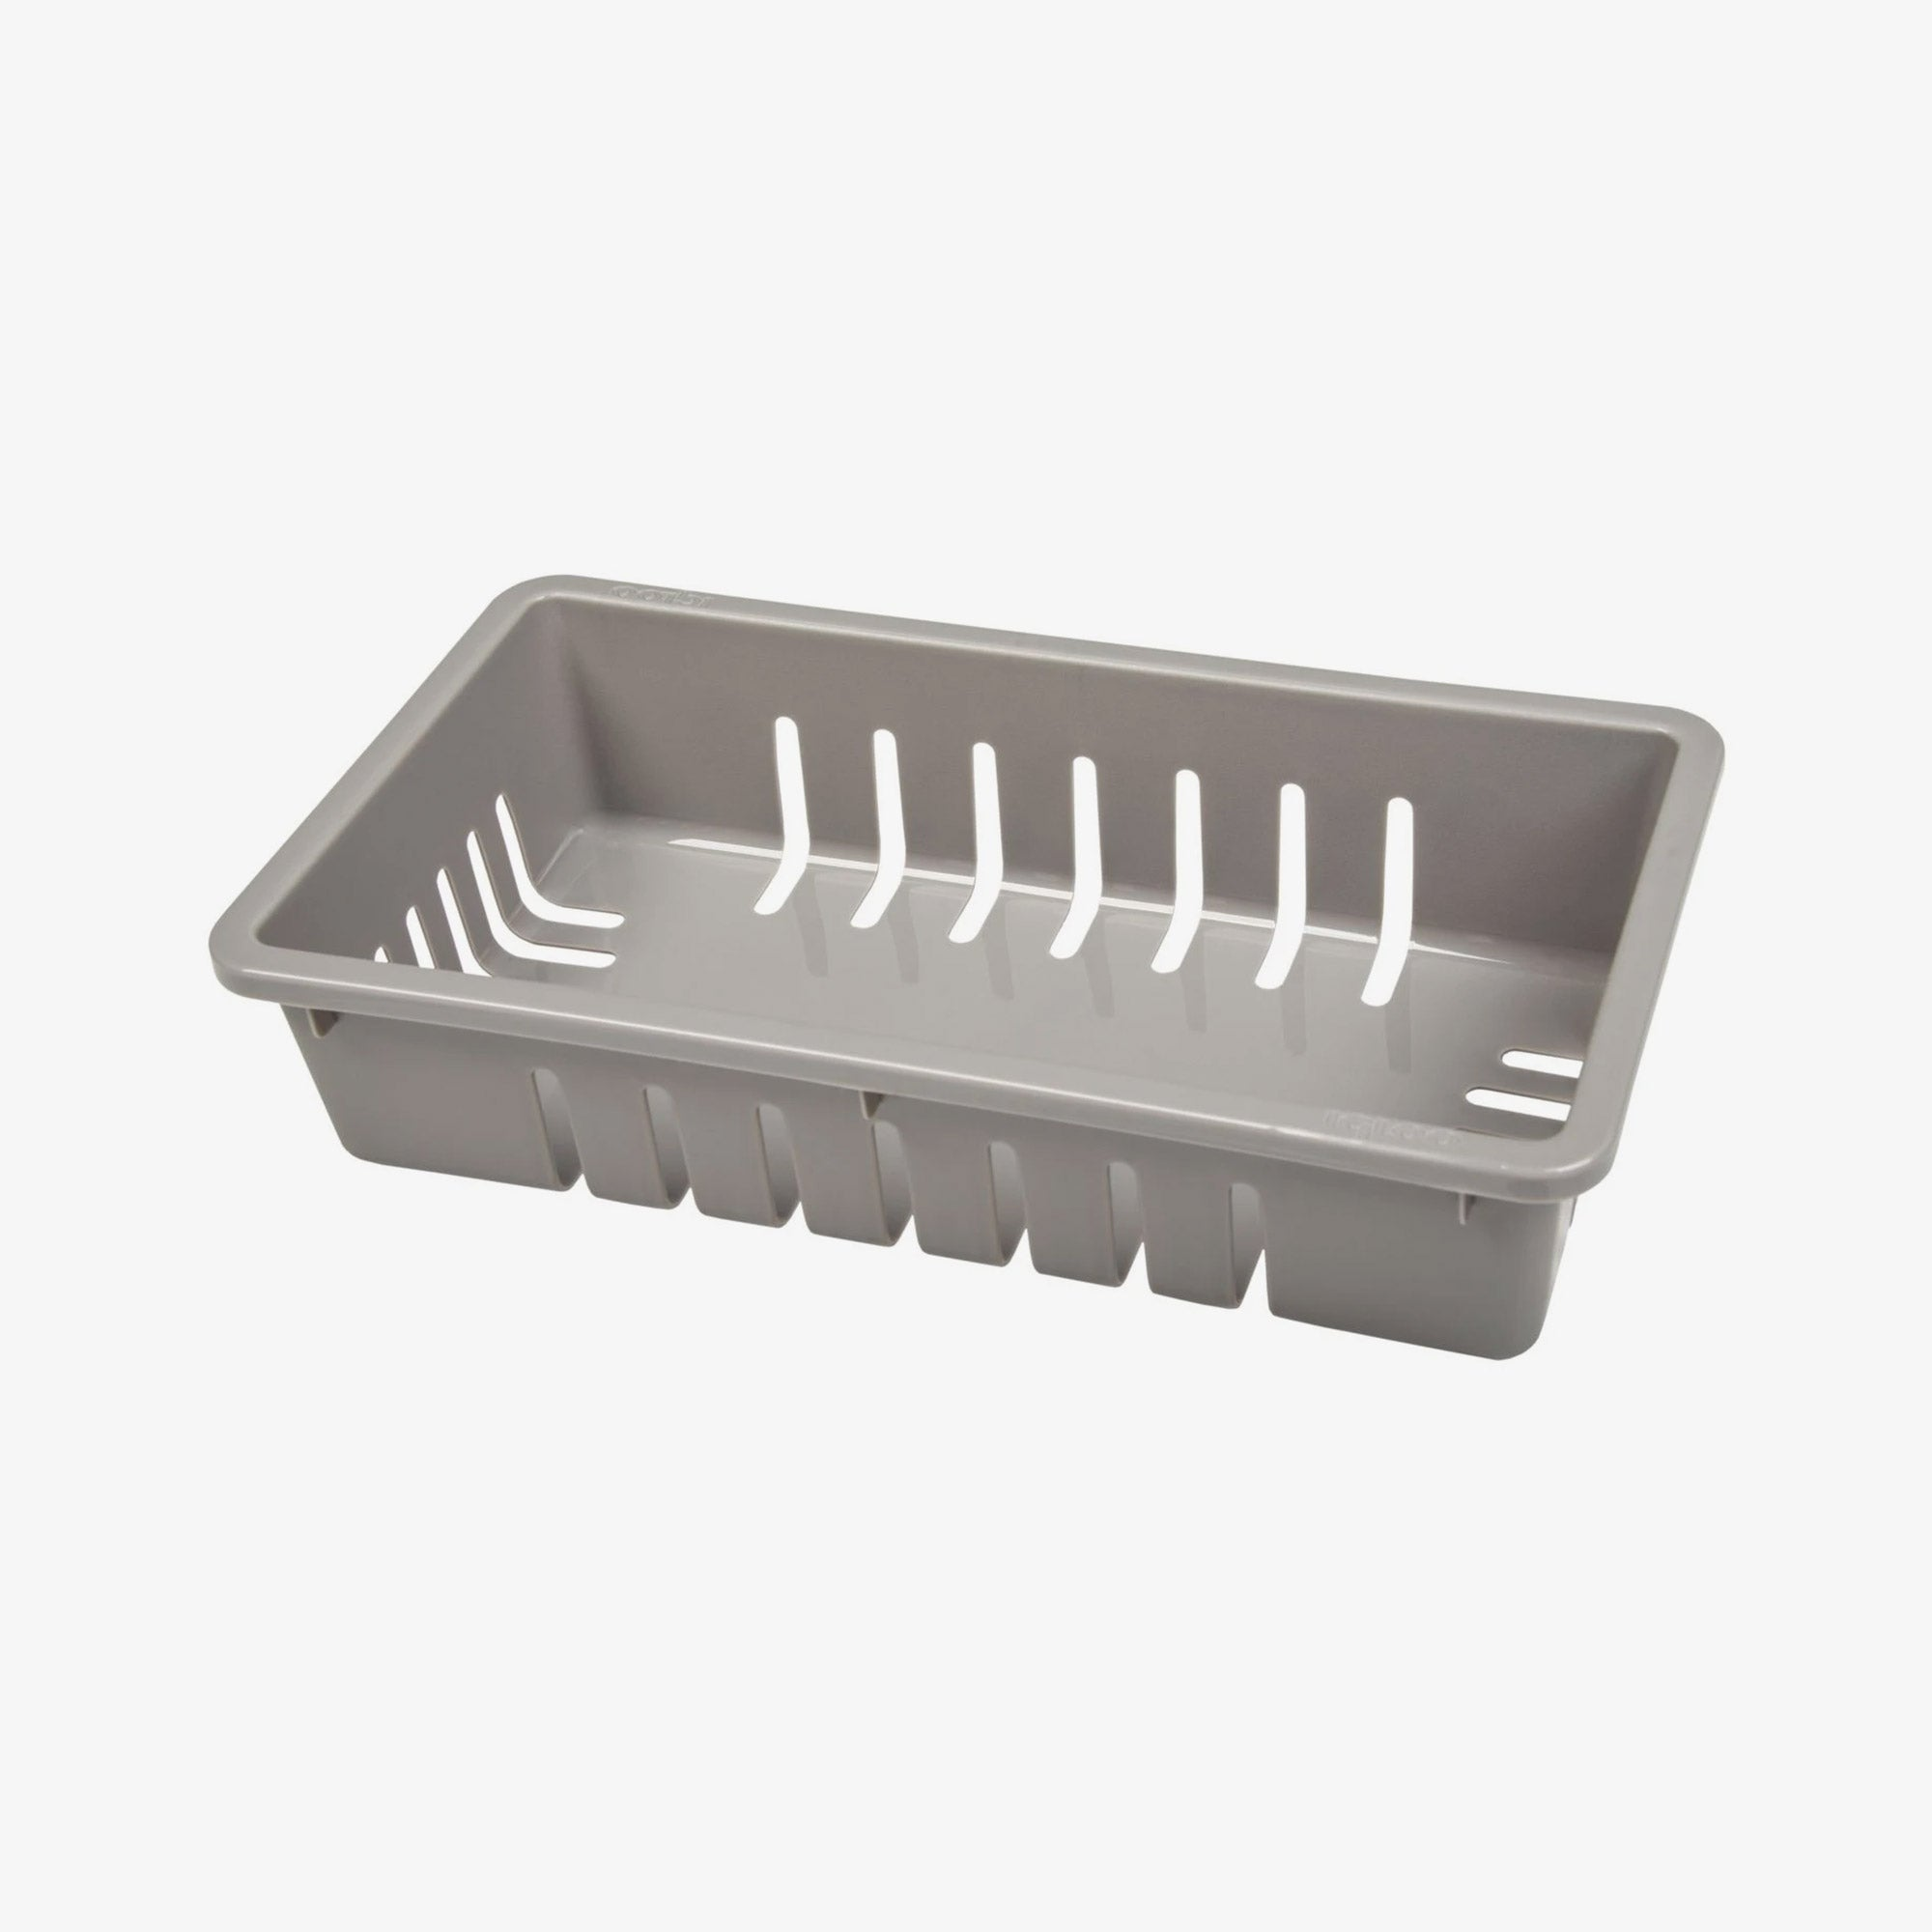 Large View | Tray For Trailmate Coolers in Gray at Igloo Replacement Parts